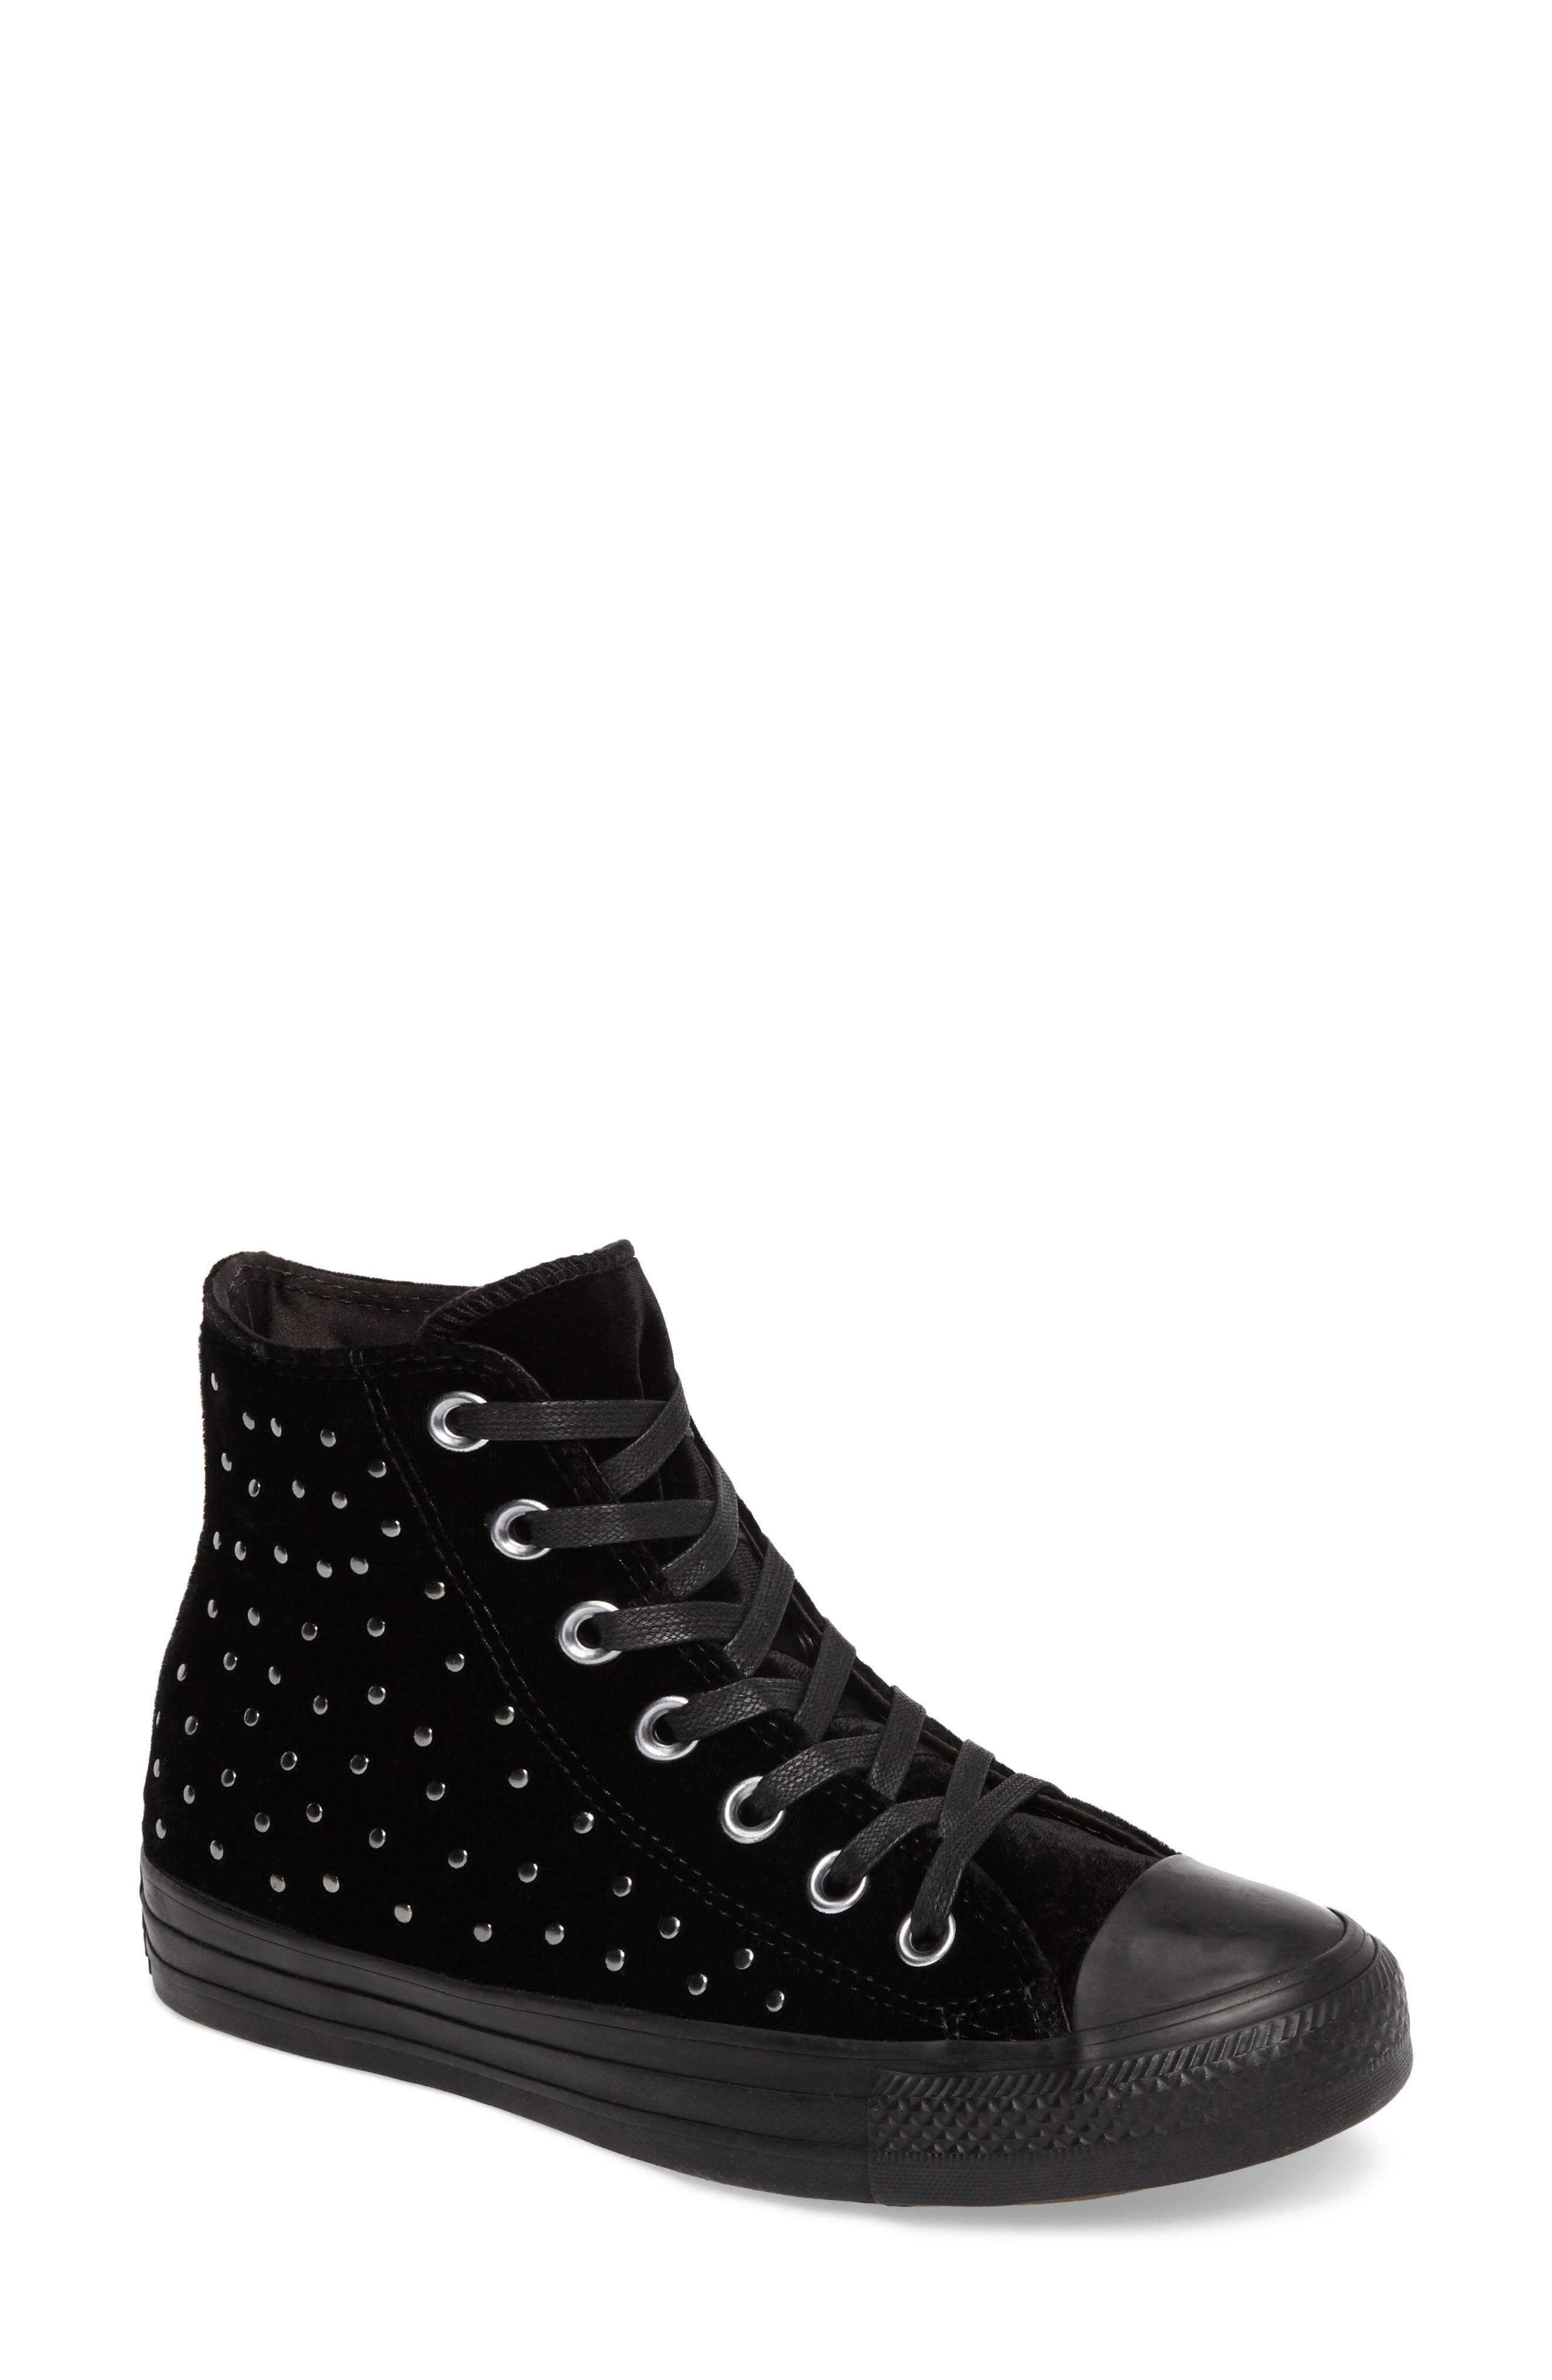 Main Image - Converse Chuck Taylor® All Star® Studded High Top Sneakers (Women)